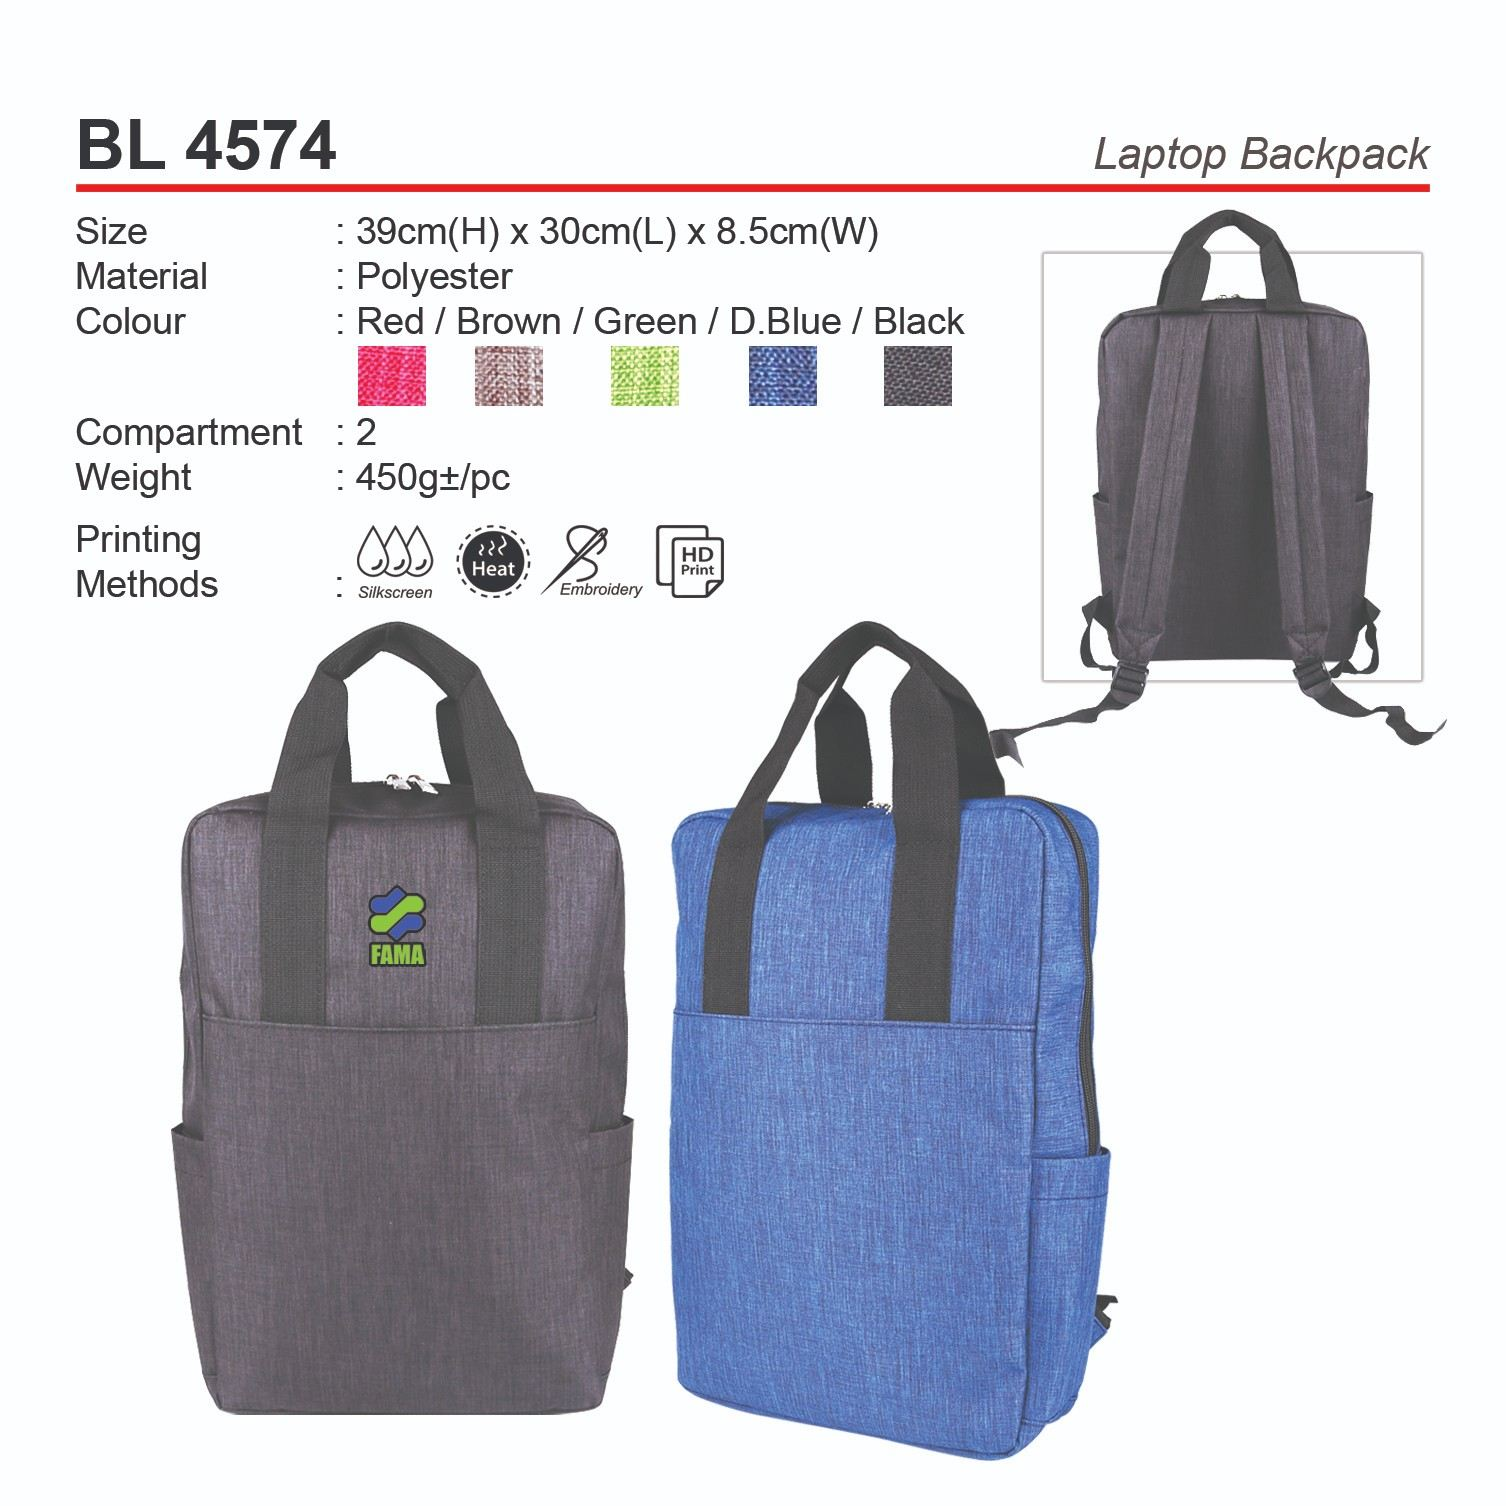 BL4574 Laptop Backpack (A)